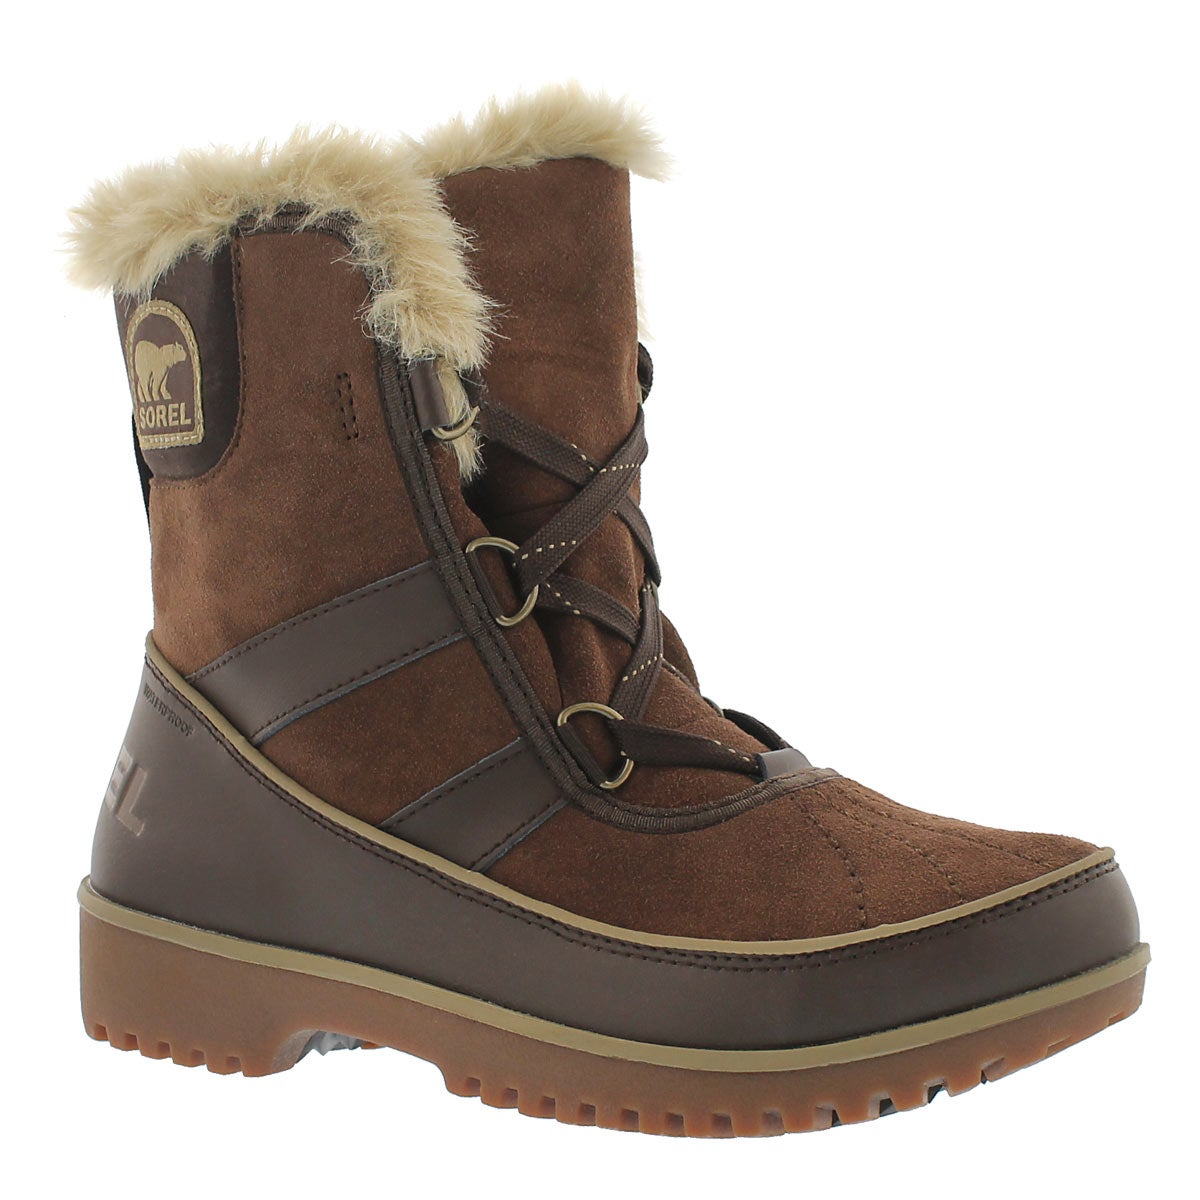 Women's TIVOLI II tobac mid shaft winter boots